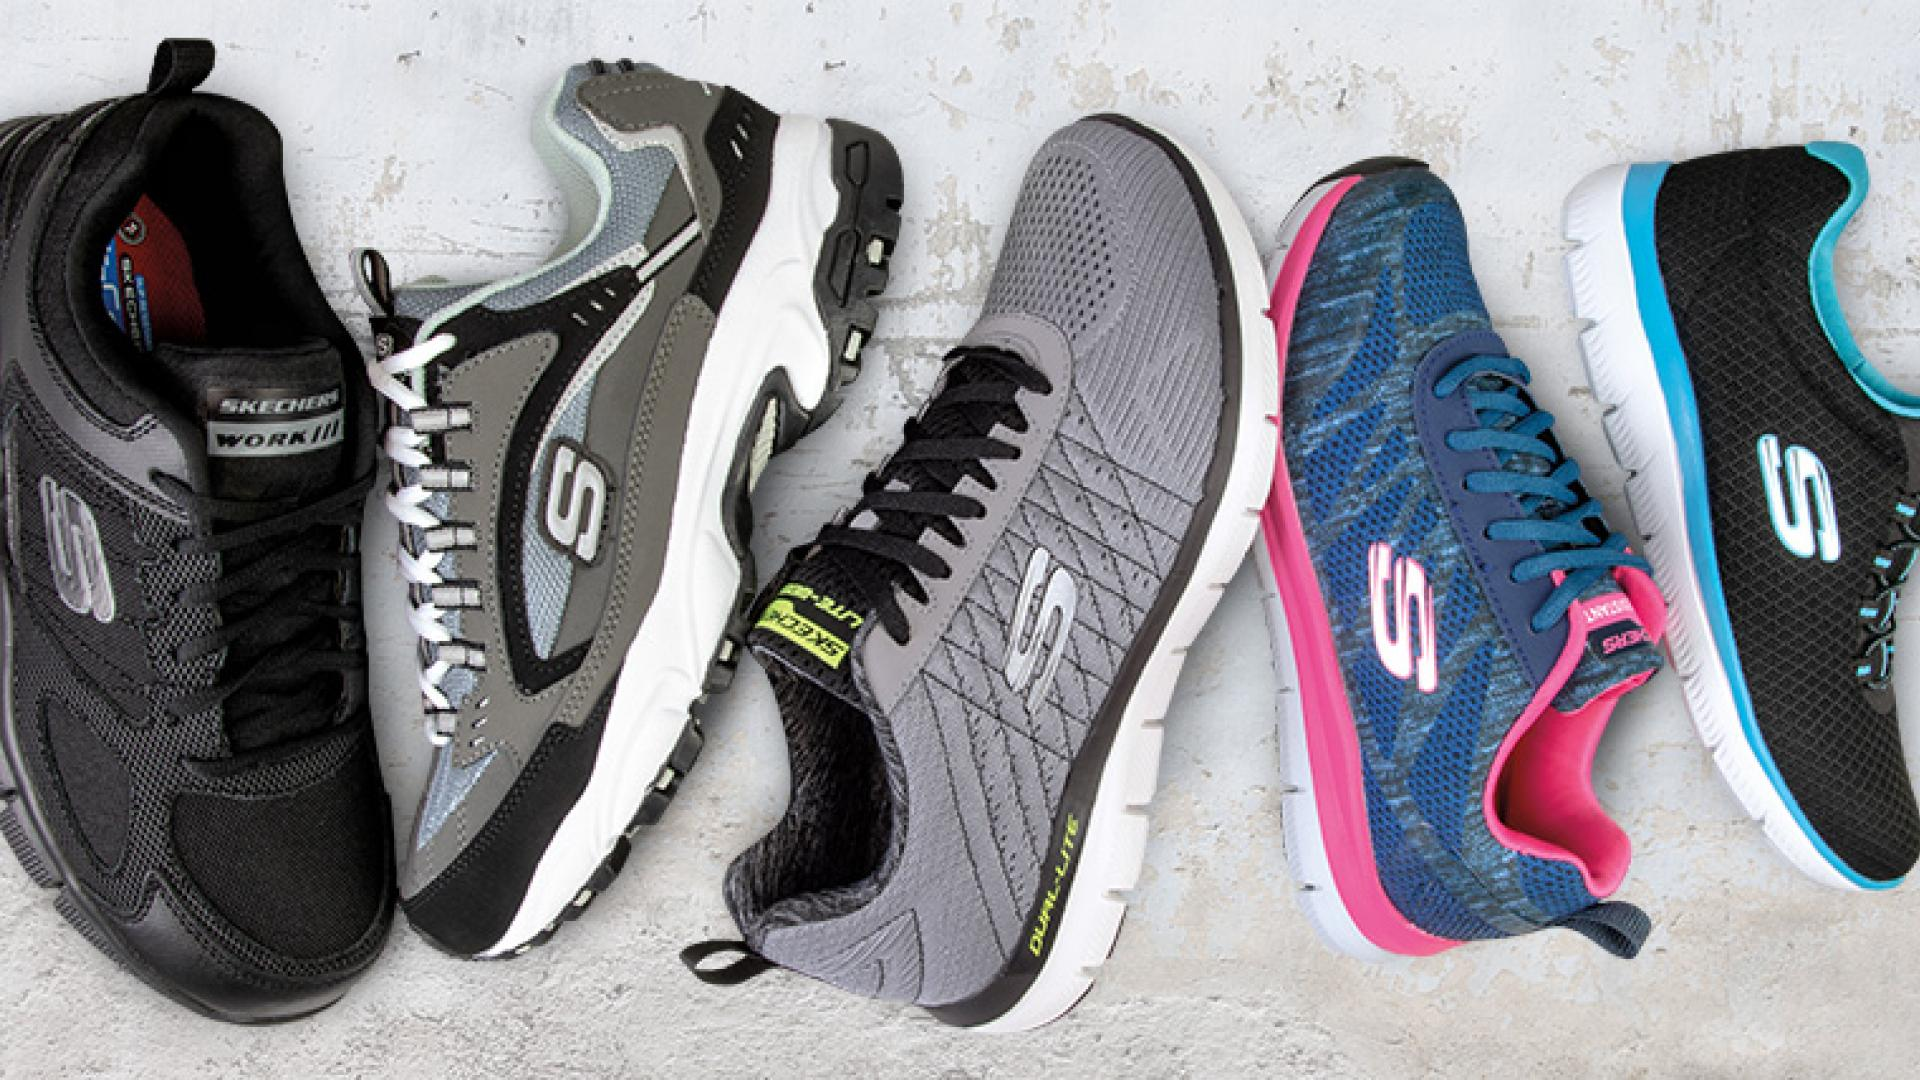 Variety of Skechers gym shoes